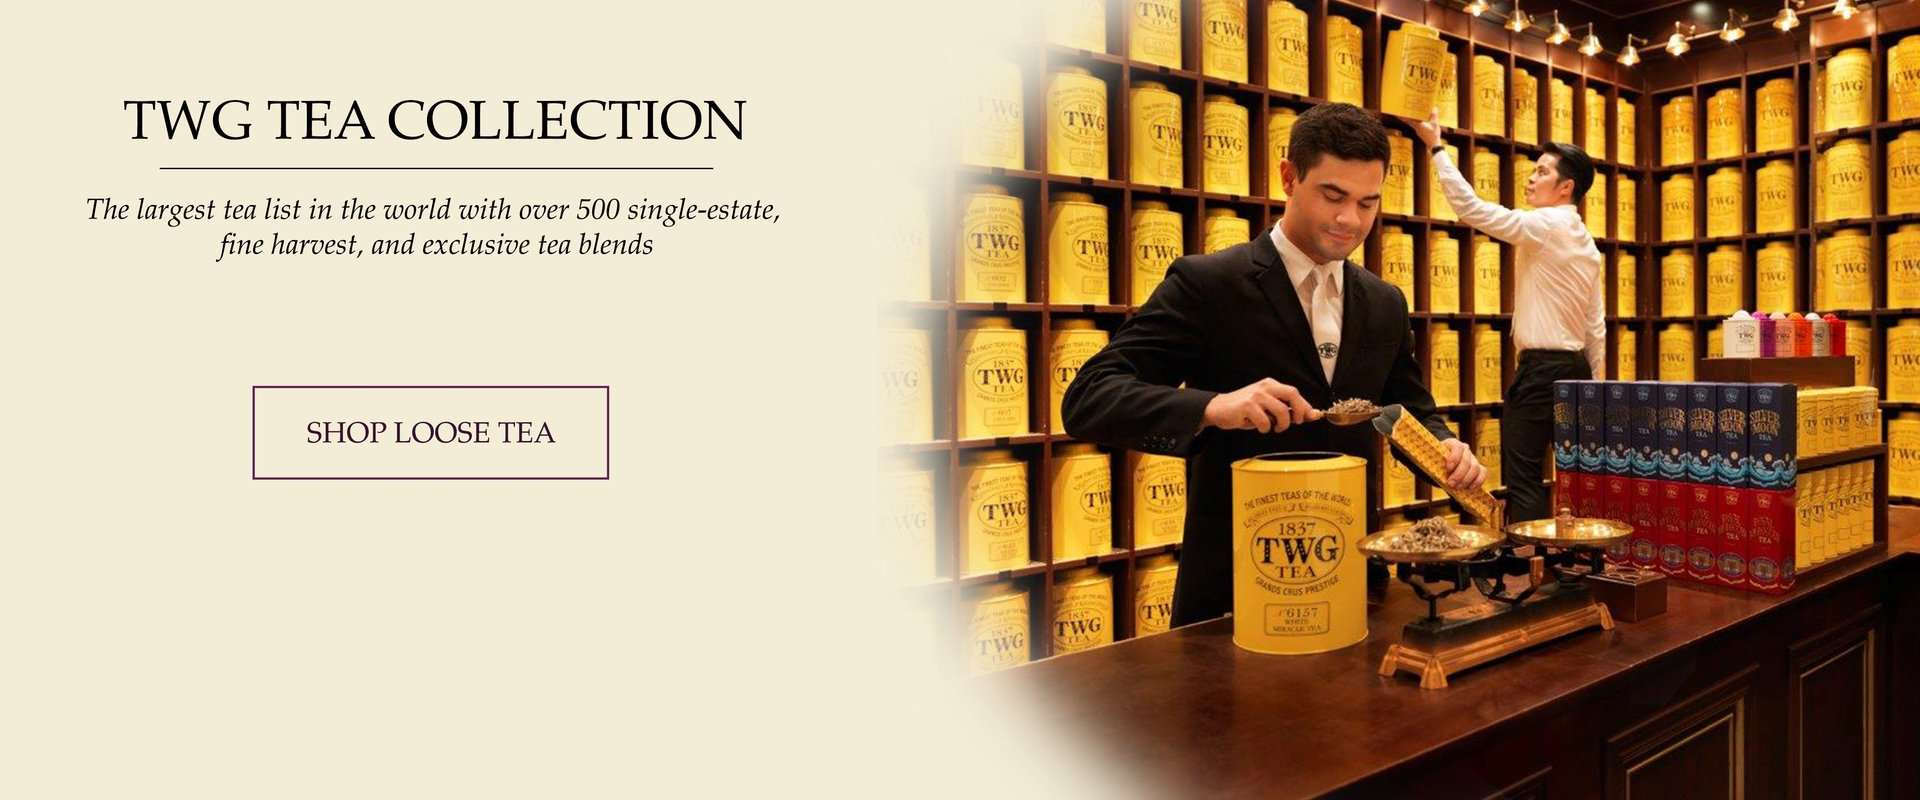 TWG Tea Salon & Boutique in Vancouver